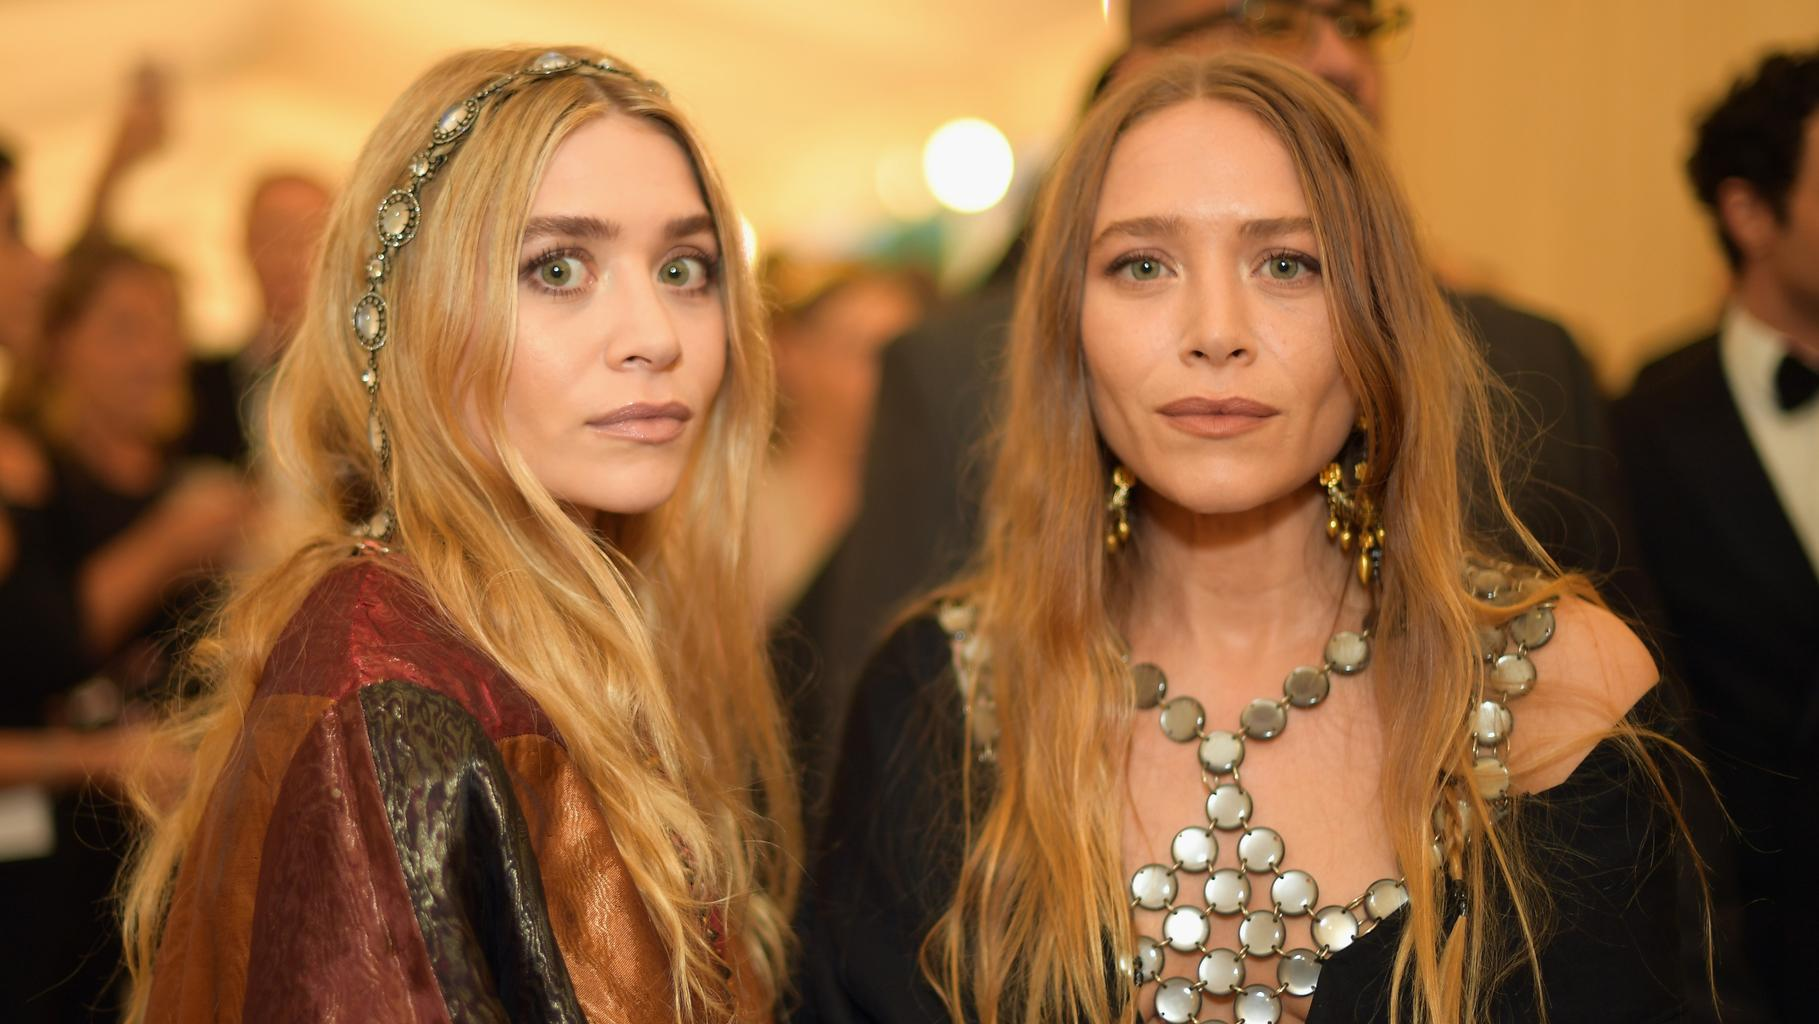 The Olsen twins Biography, Facts & Life Story Updated 2021